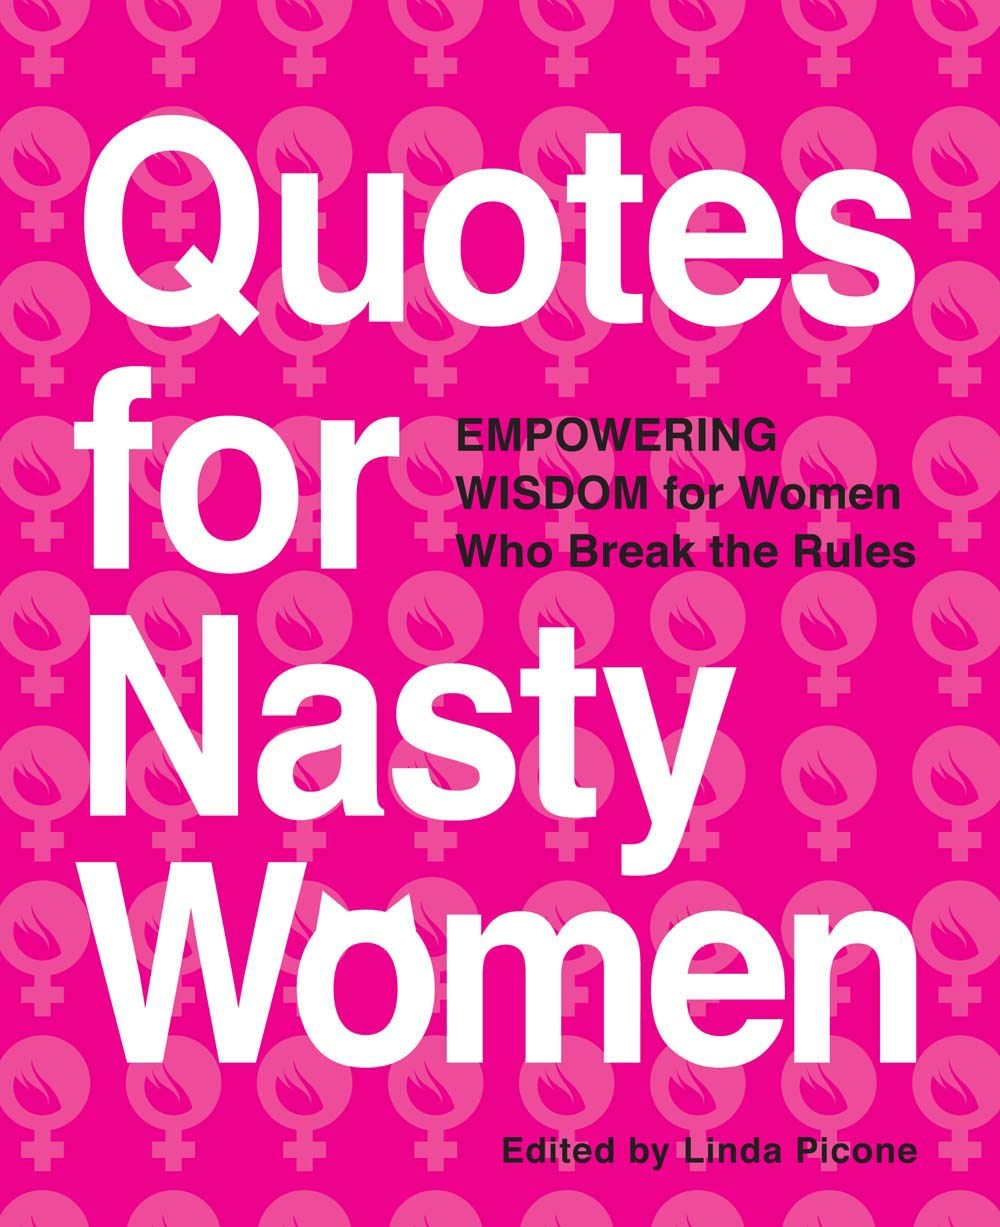 Empowering Women Quotes Quotes For Nasty Women  Newsouth Books